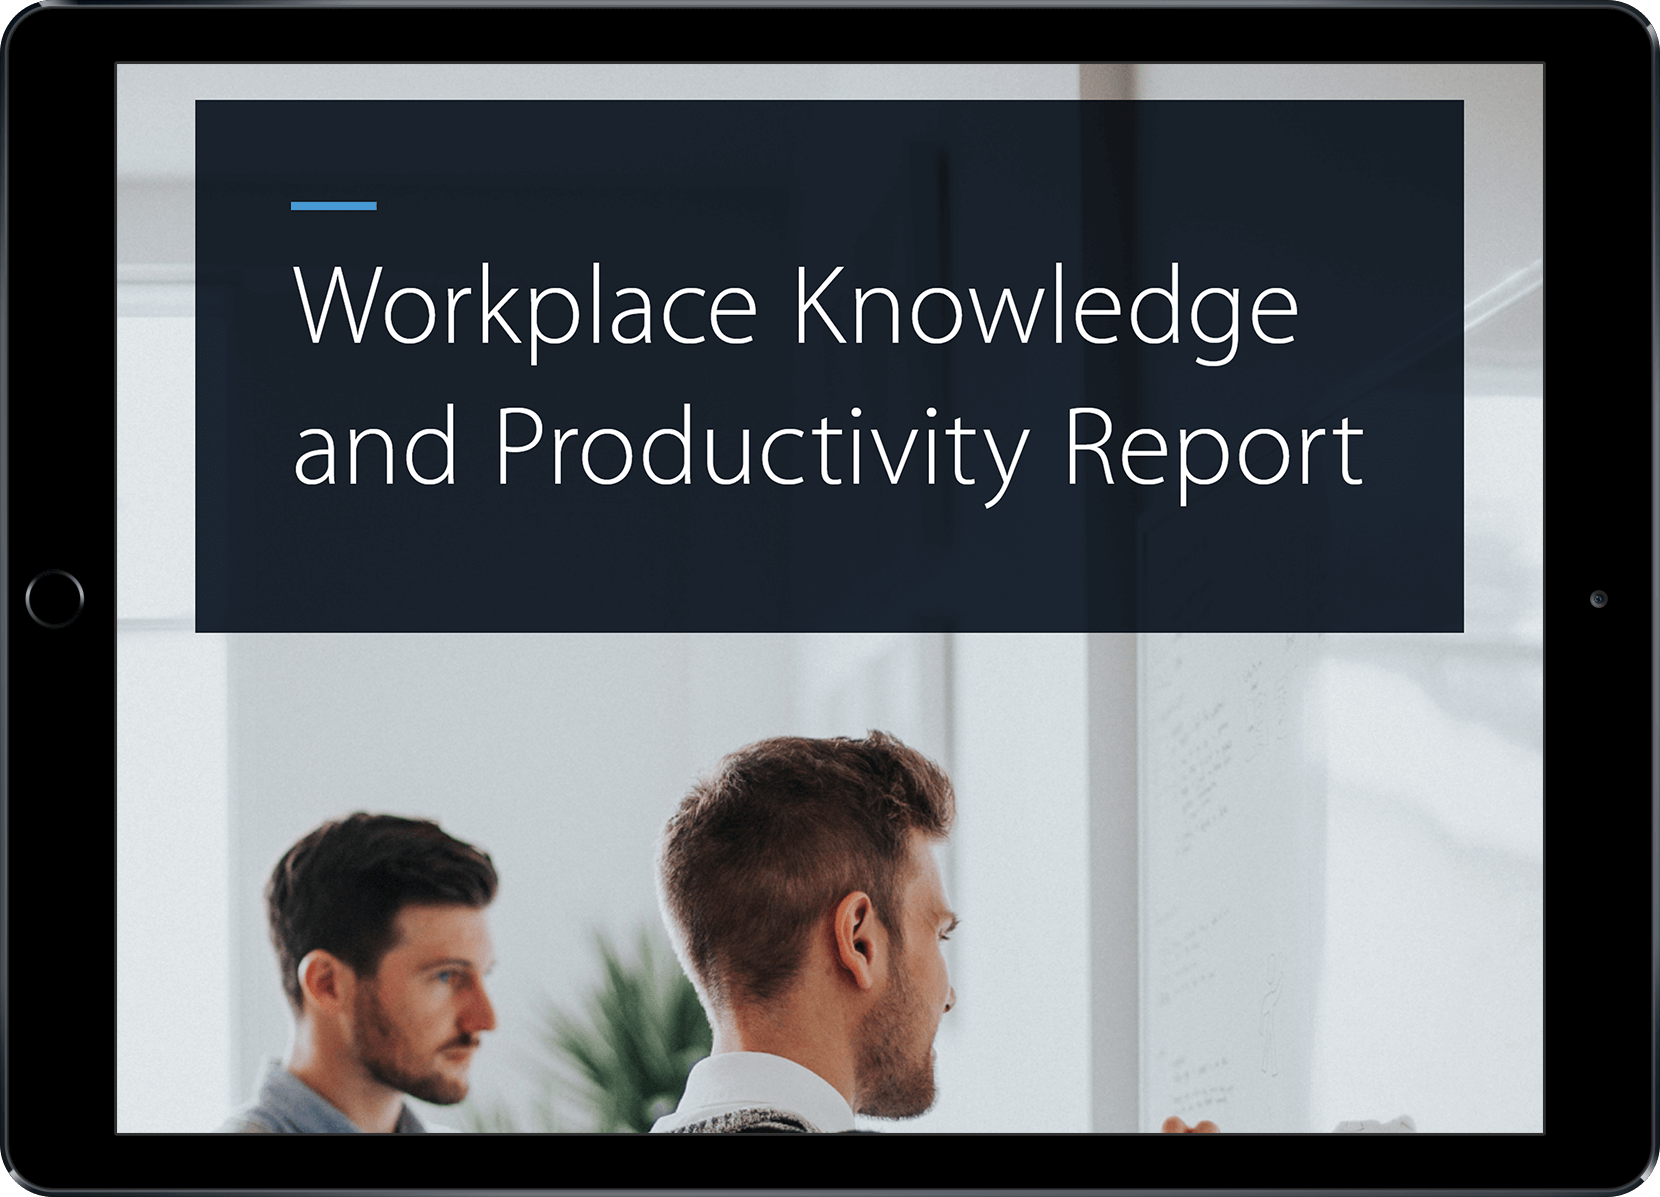 Download the Workplace Knowledge and Productivity Report